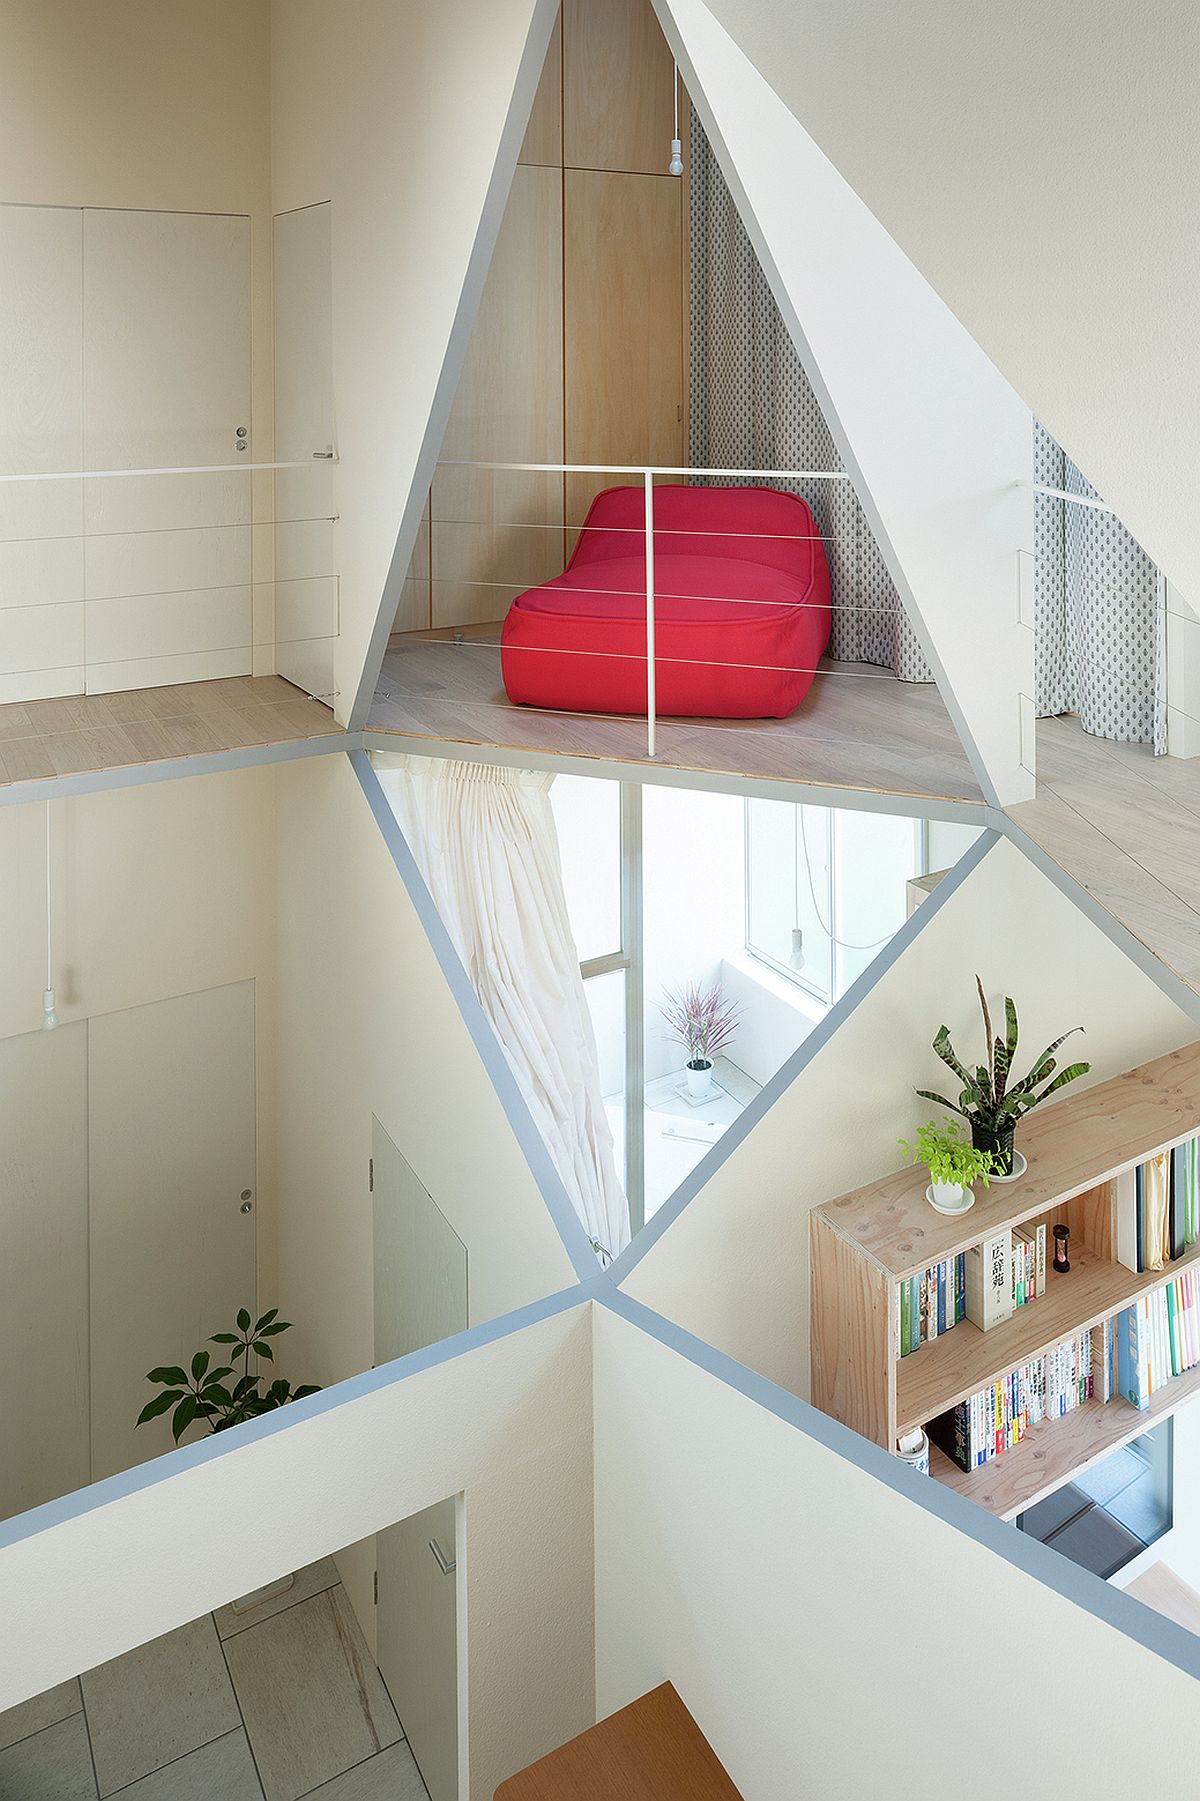 Different cut-outs and spaces create tiny rooms inside the house with geometric style